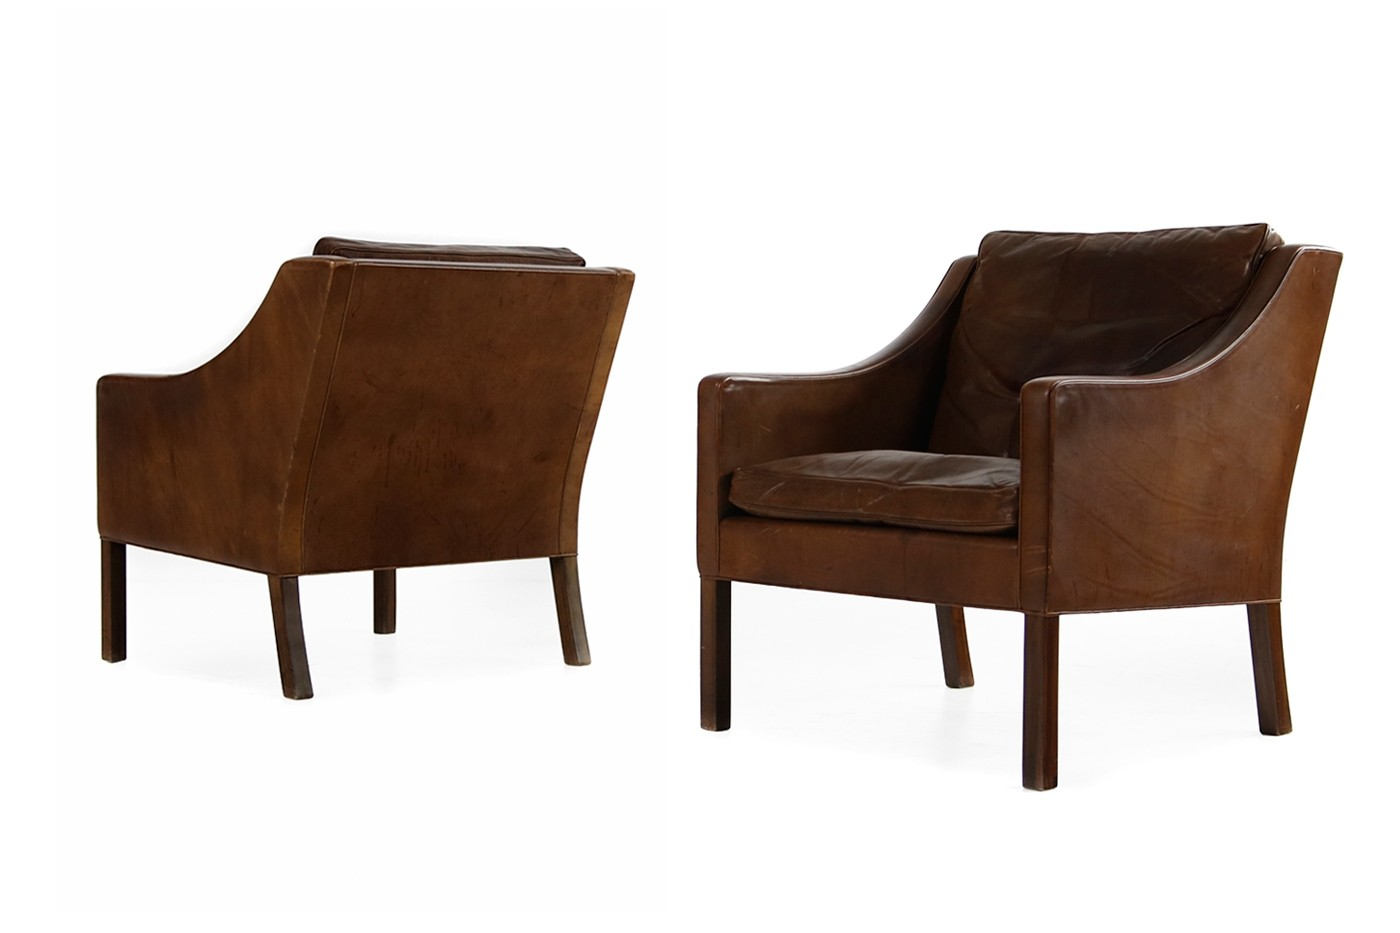 Borge Mogensen Sessel Pair Of 1960s Borge Mogensen Mod 2207 Vintage Lounge Chairs